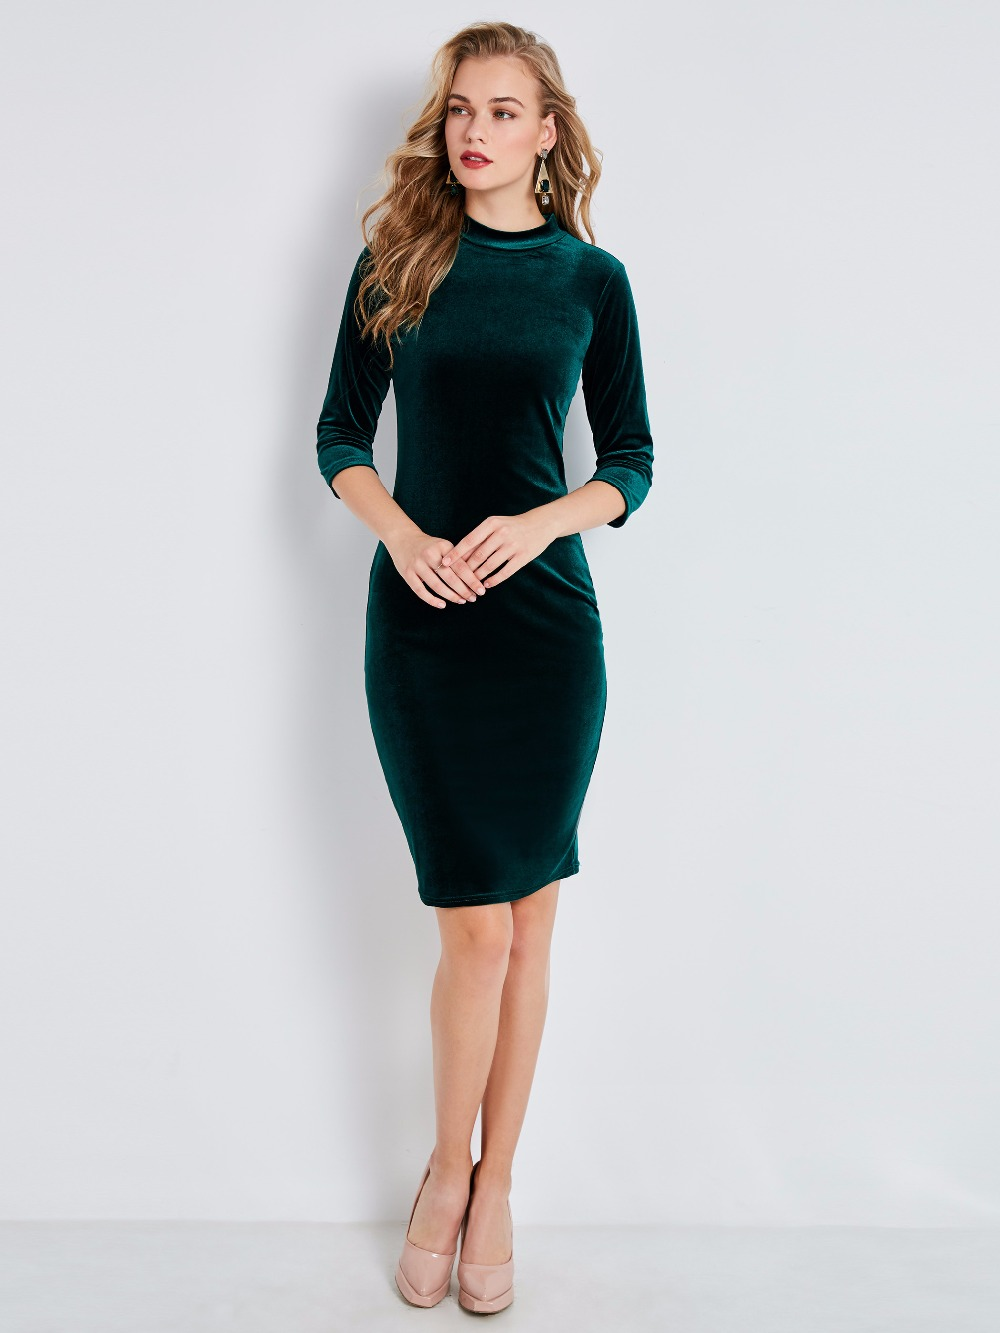 Medium Of Hunter Green Dress